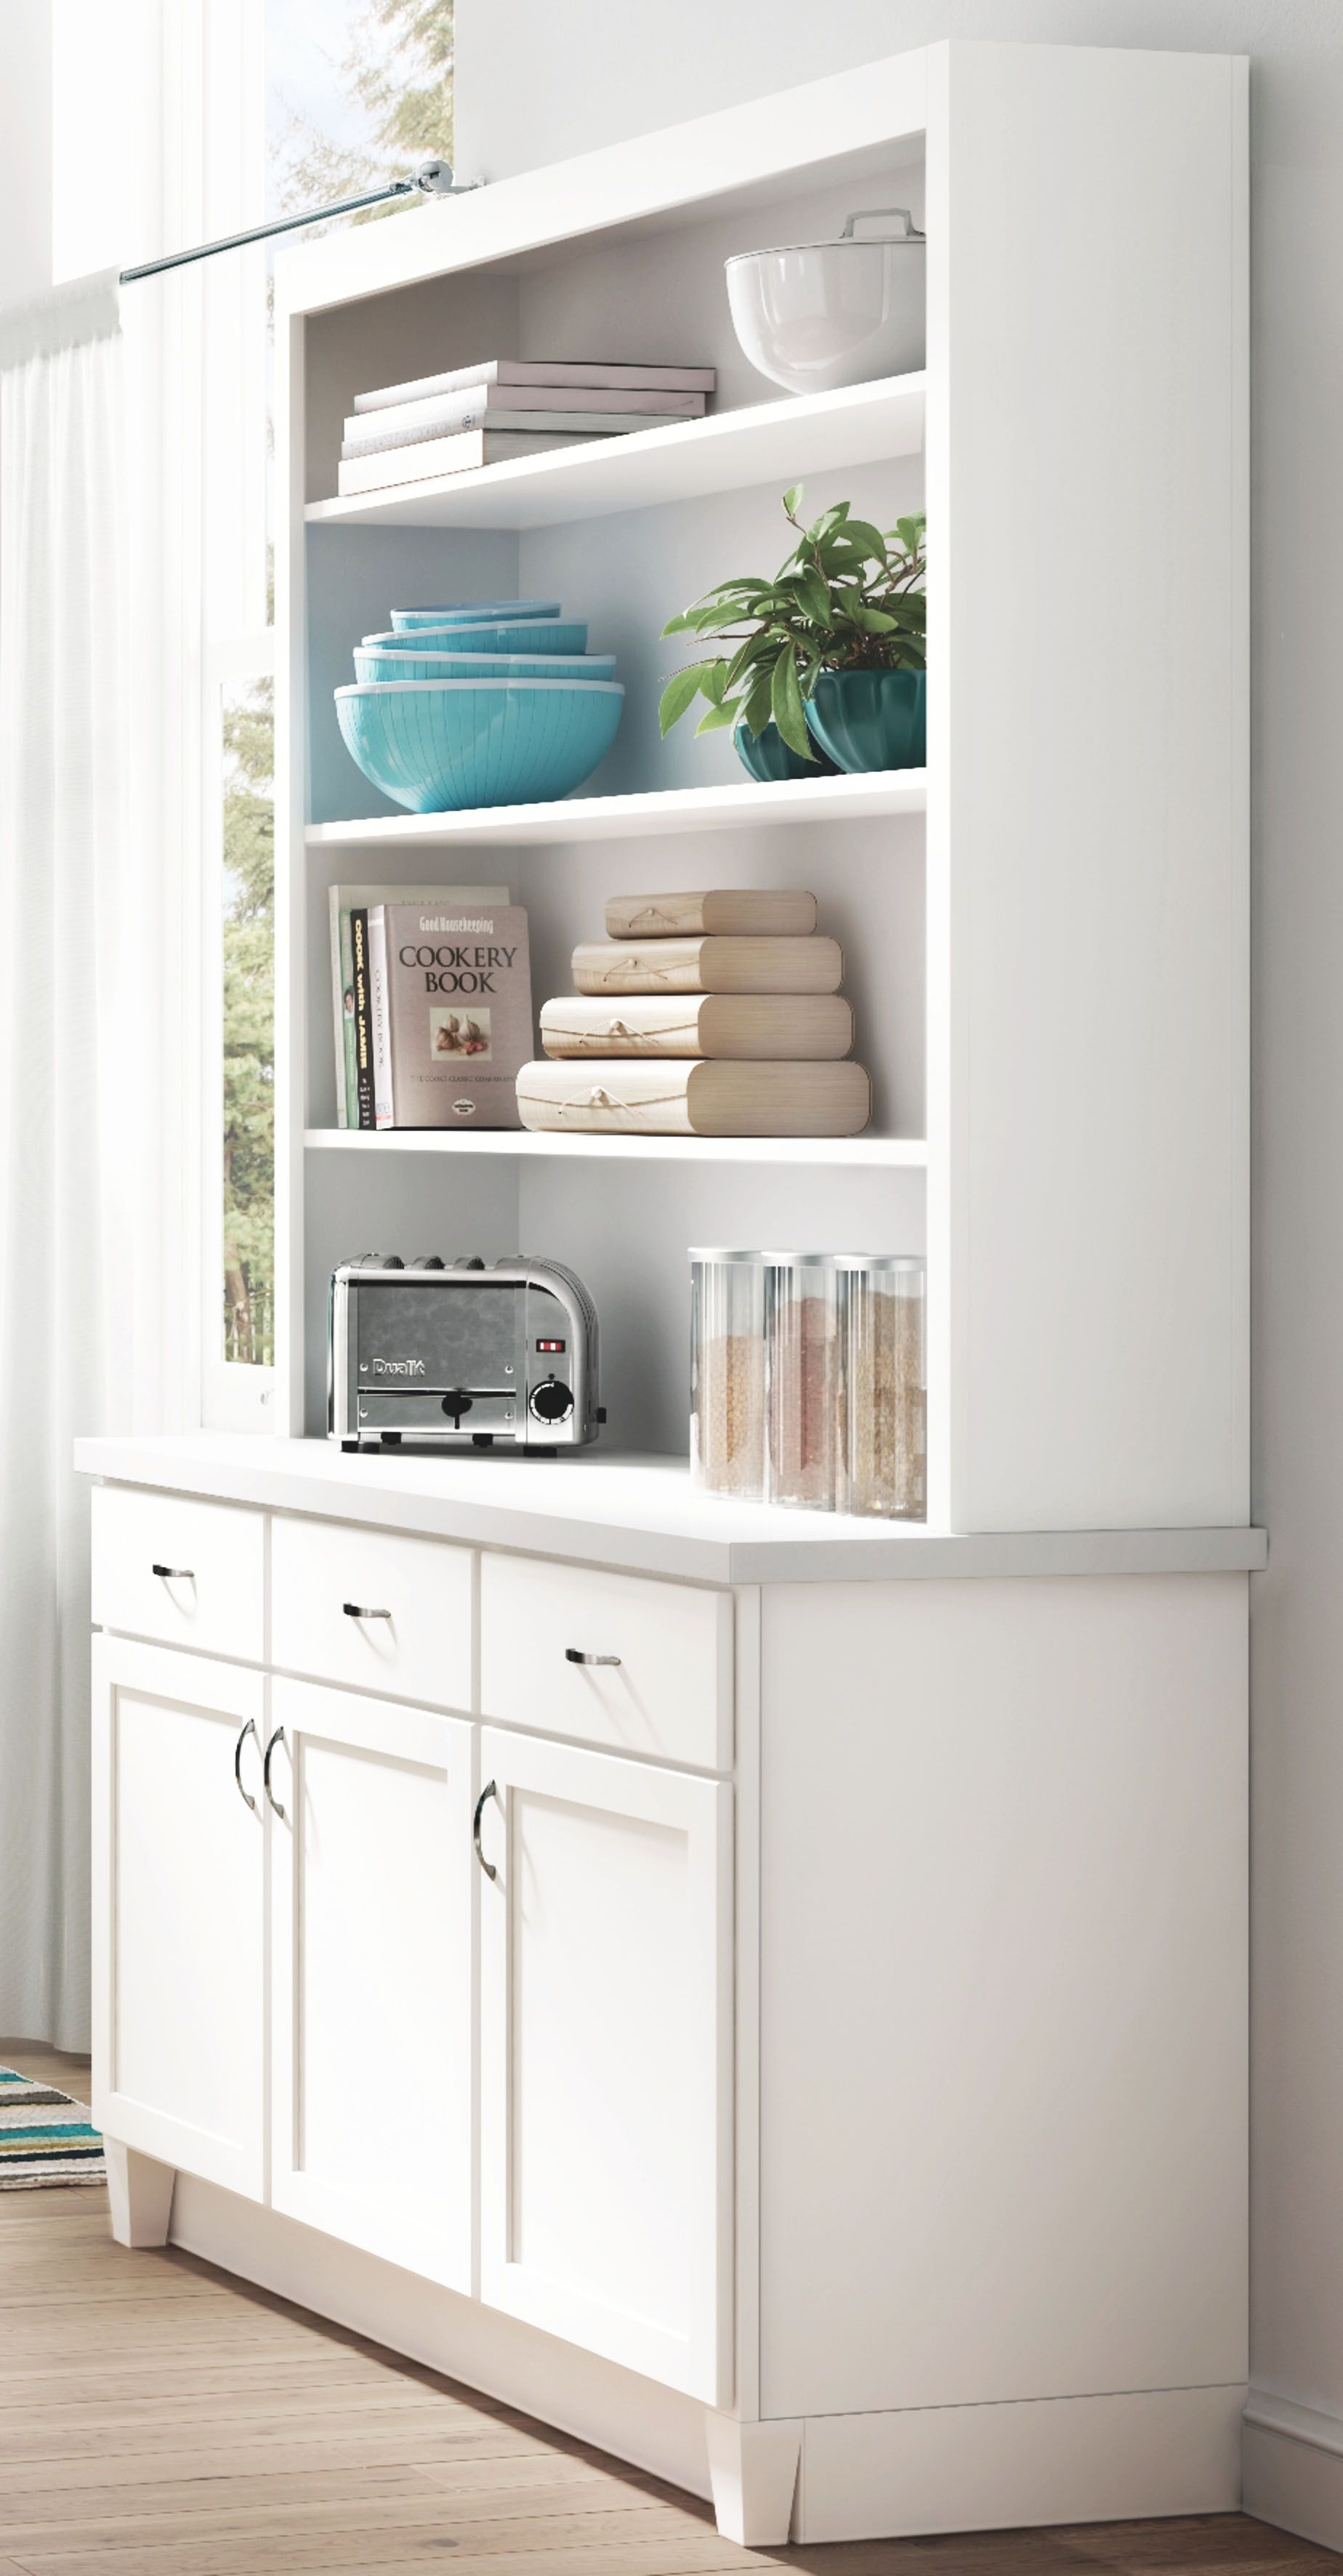 Pin by General Finishes on White & Neutral | Pinterest | Bath ...